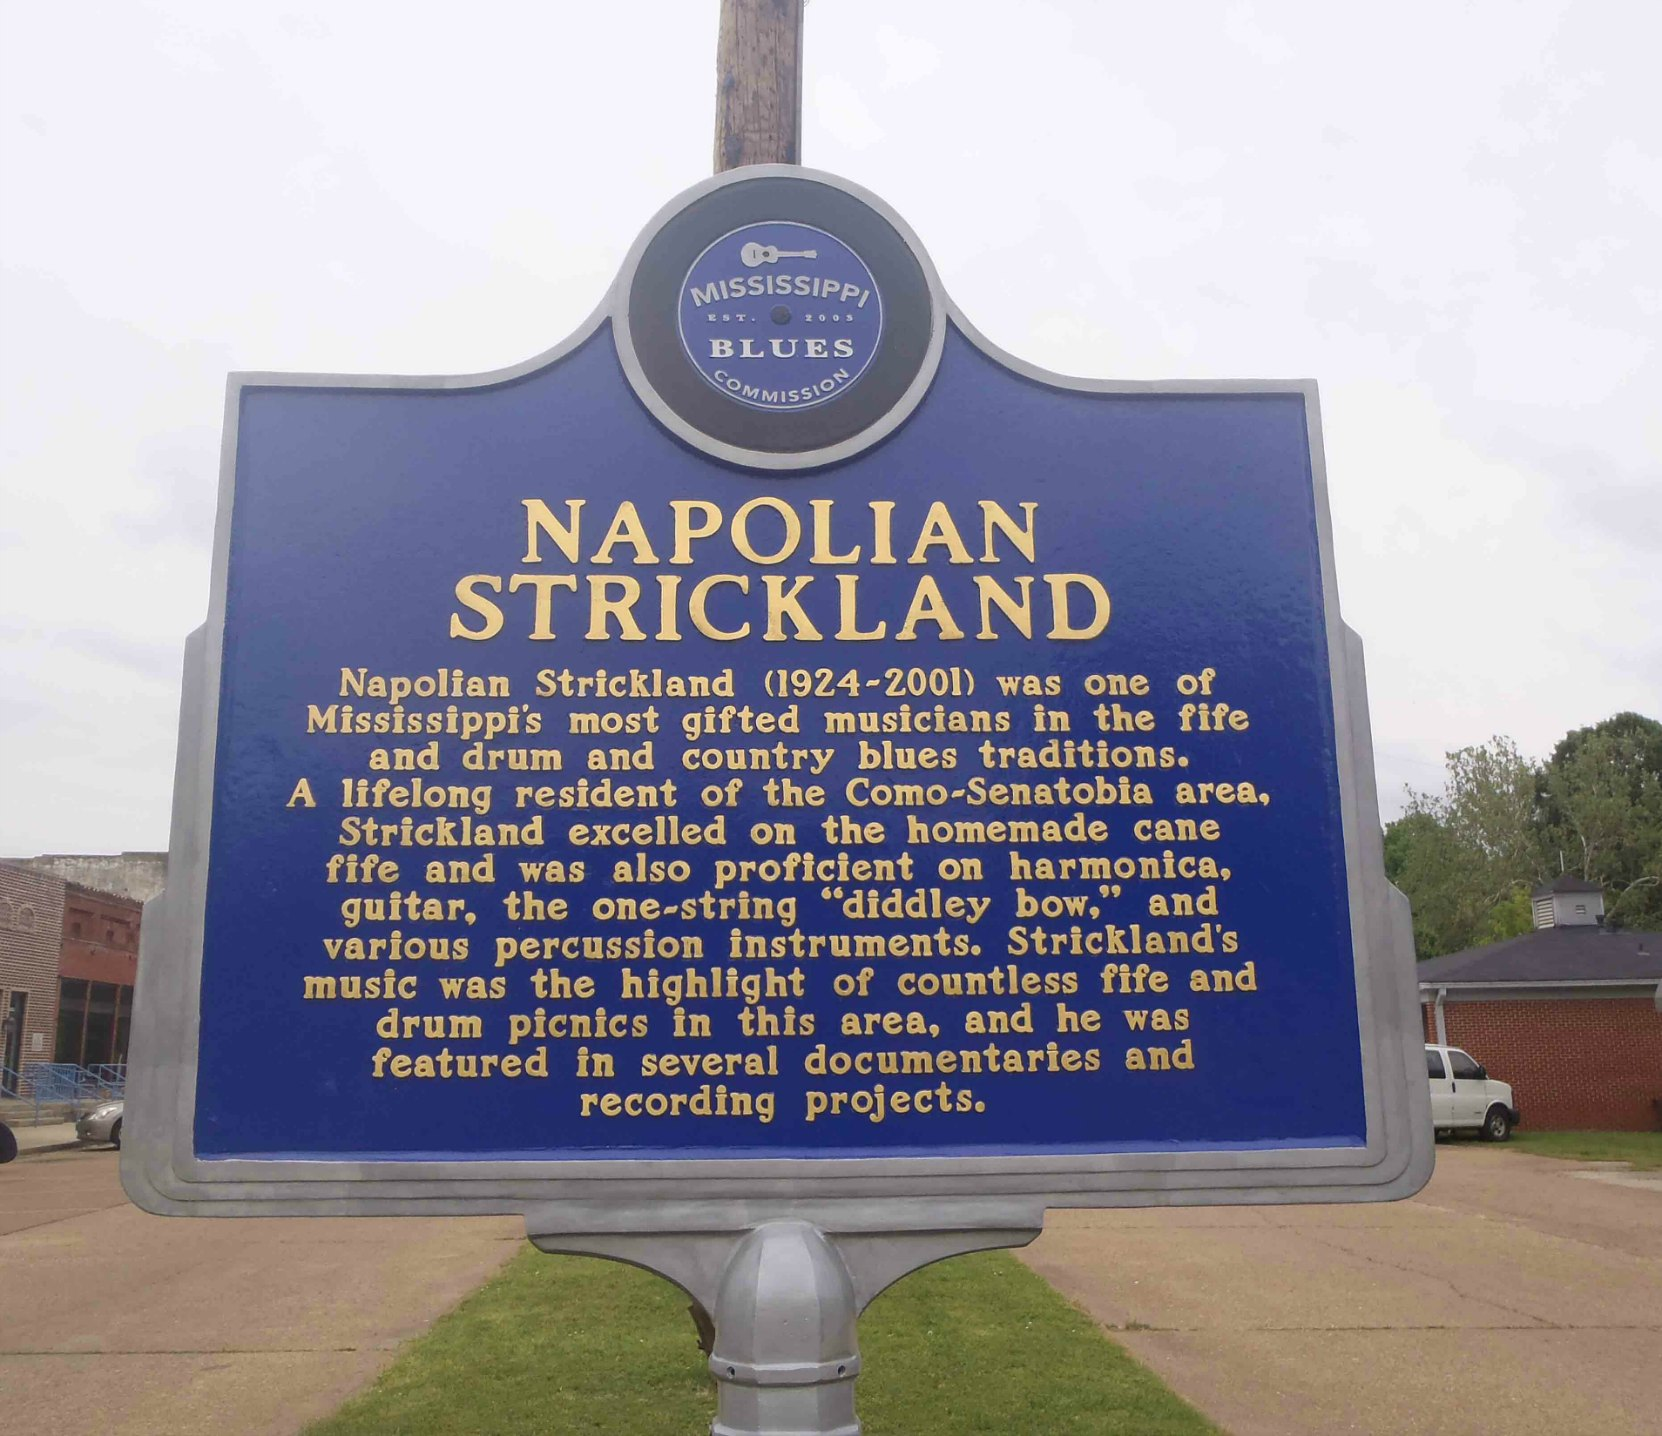 Mississippi Blues Trail marker for Napolian Strickland, Como, Mississippi